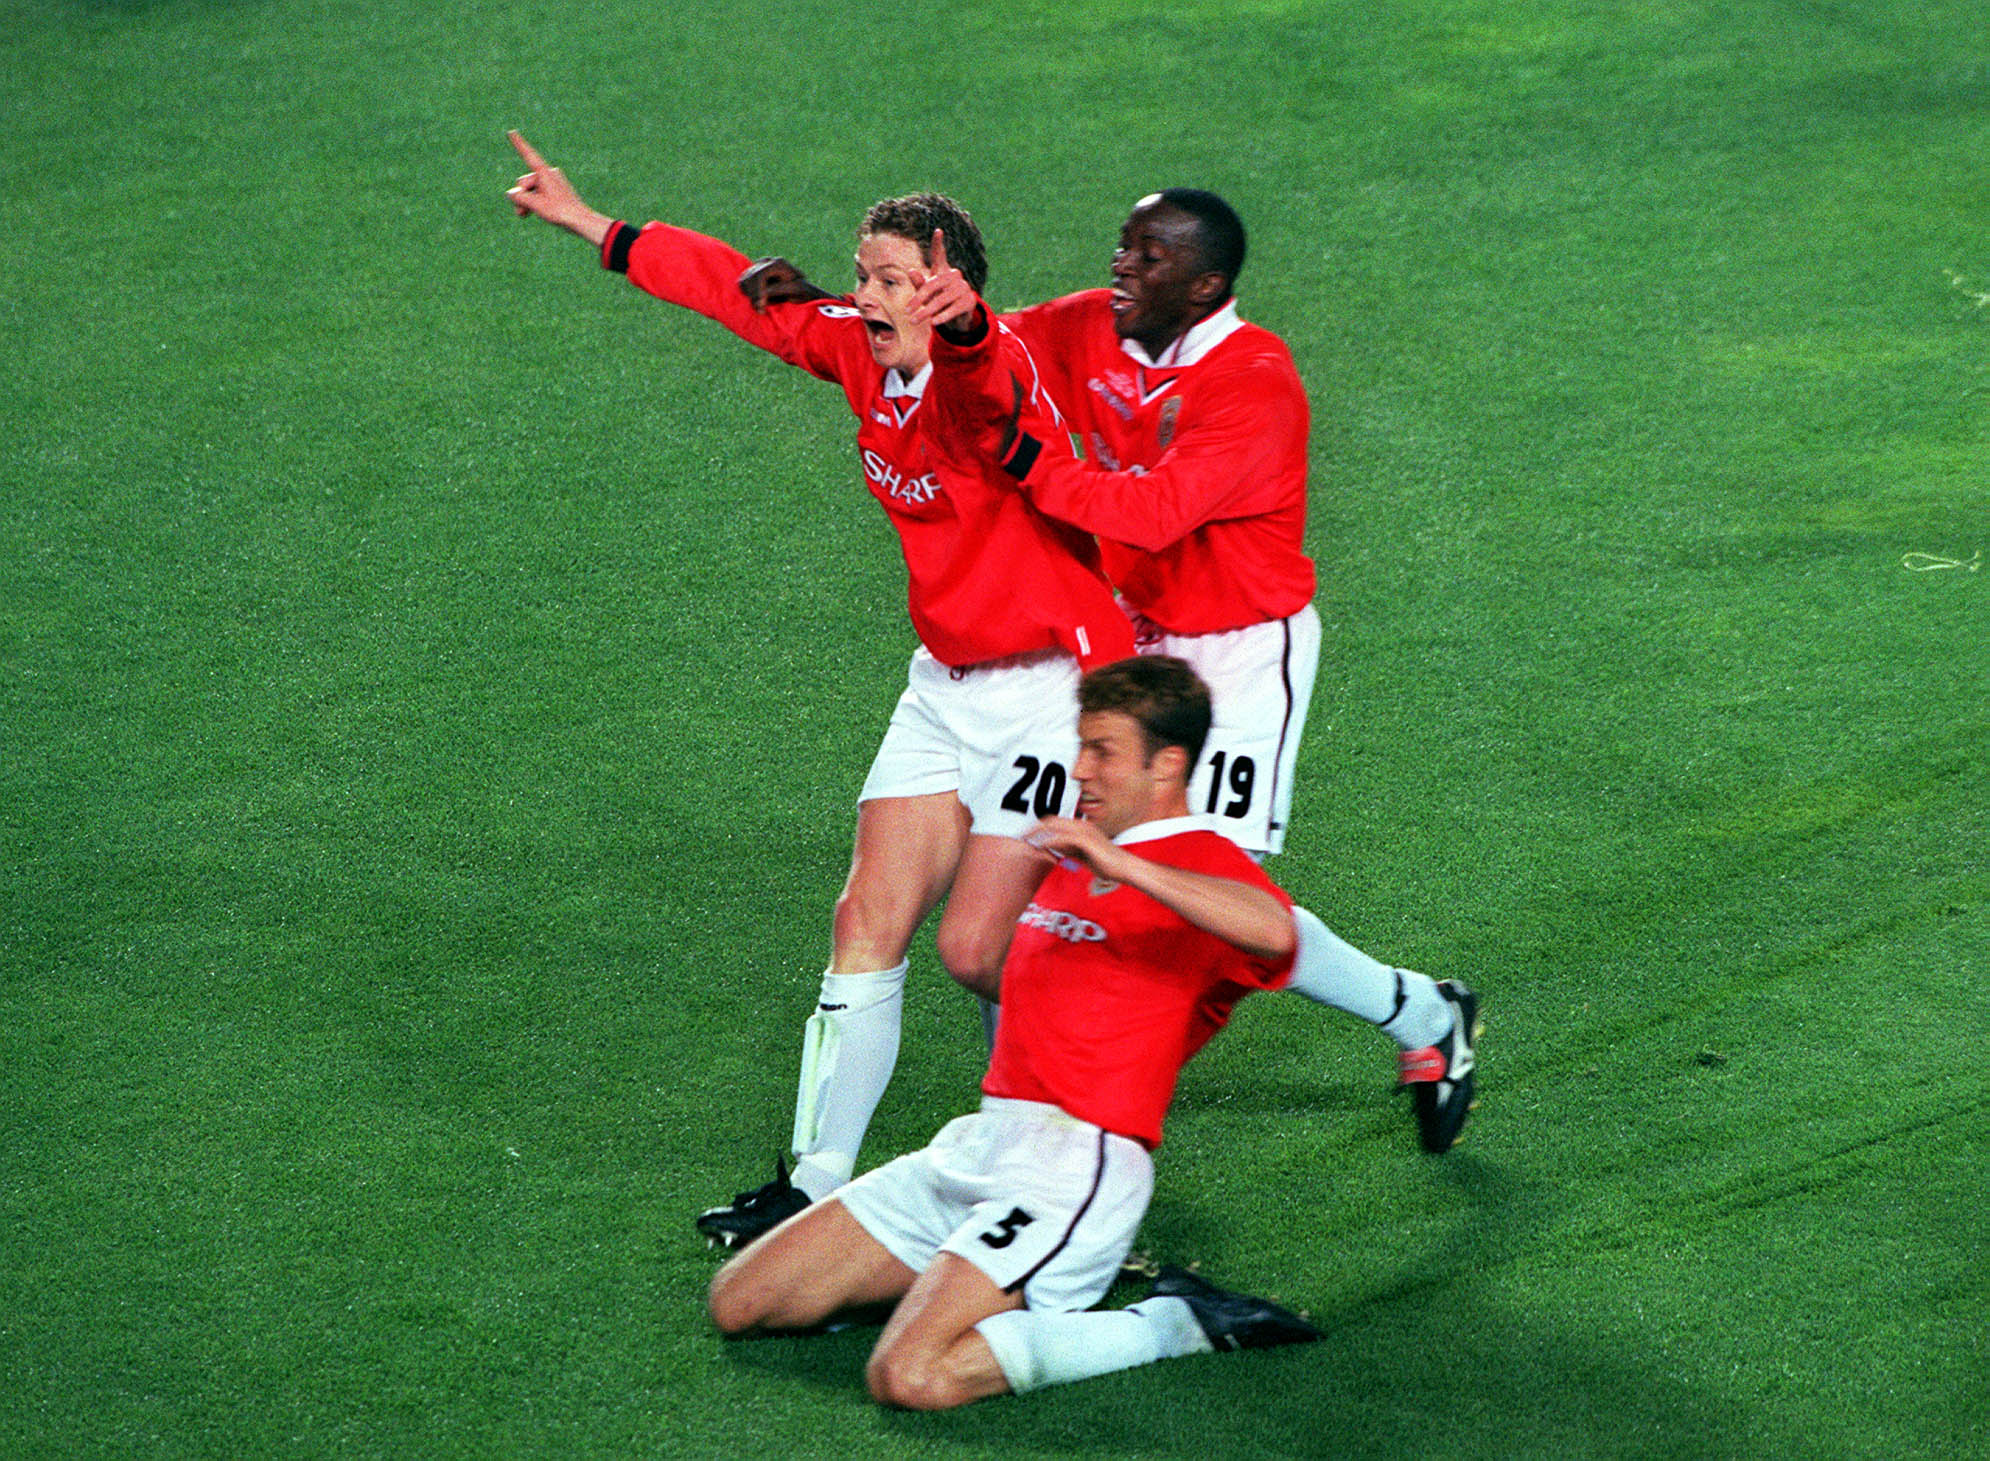 Ole Solskaer celebrates scoring the winner for United Manchester United against Bayern Munich in the 1999 Champions League Cup Final